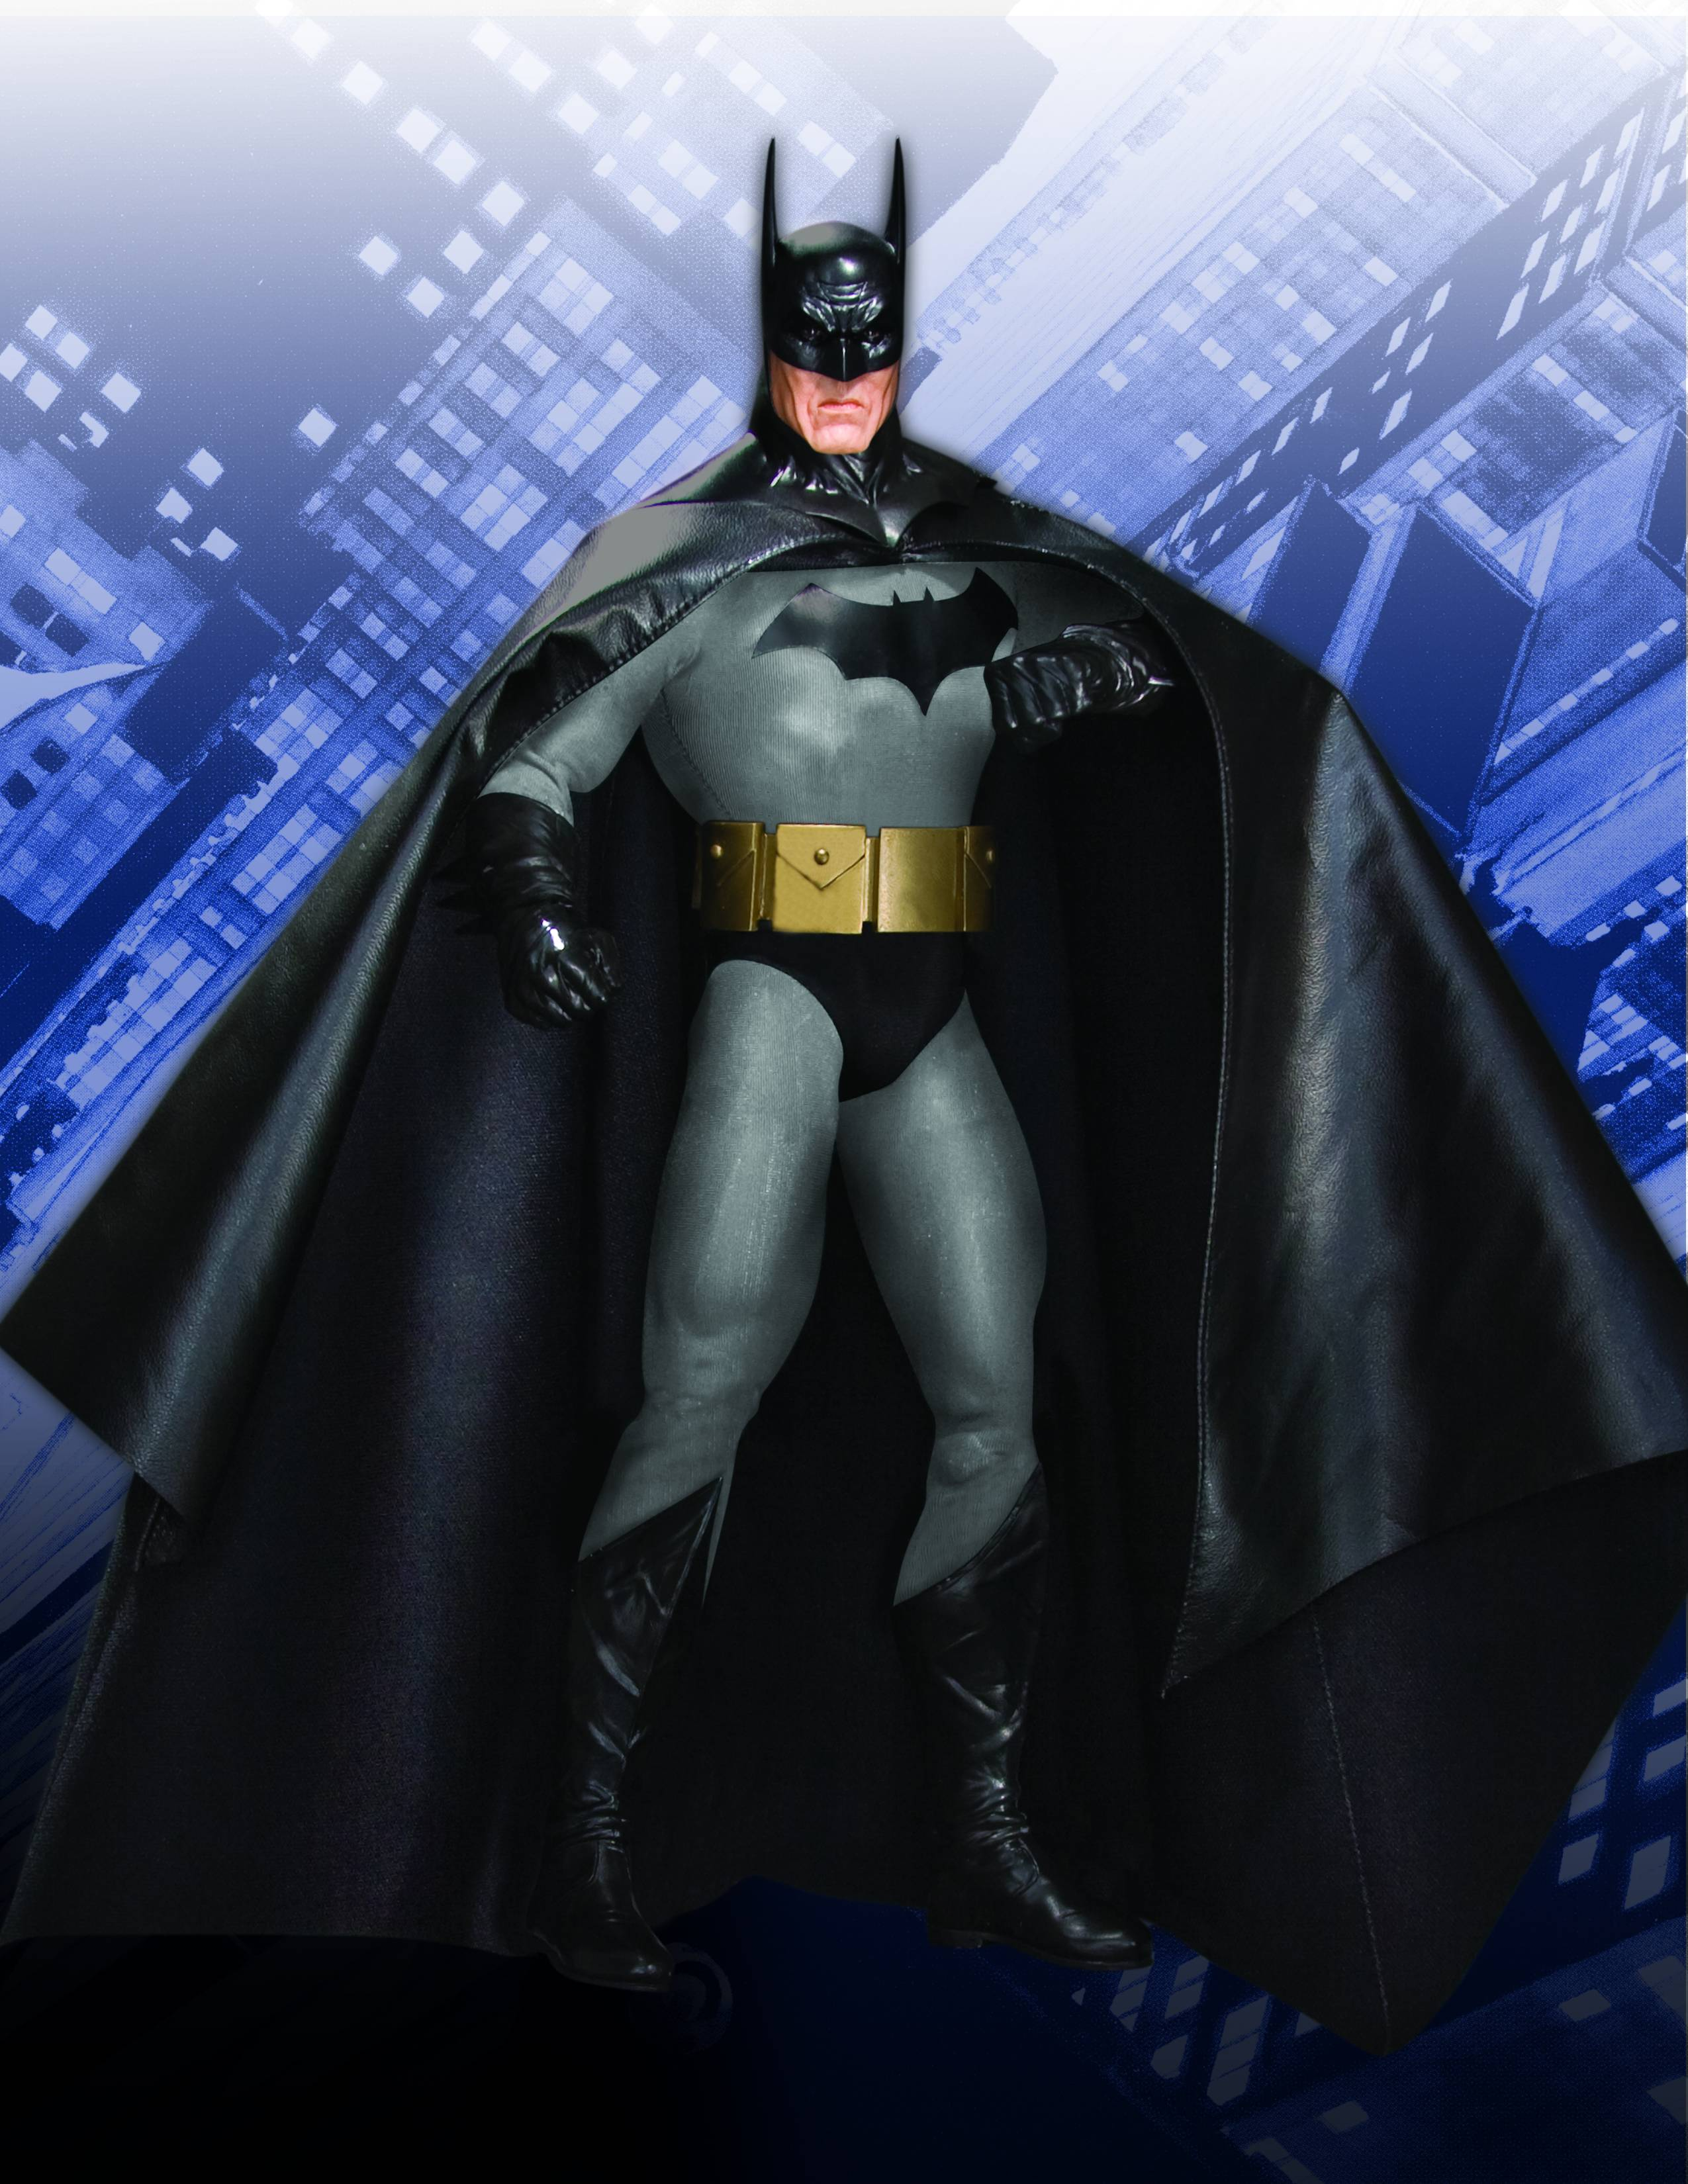 http://www.figoodies.com/image_produit/MAY100314%20BATMAN.jpg